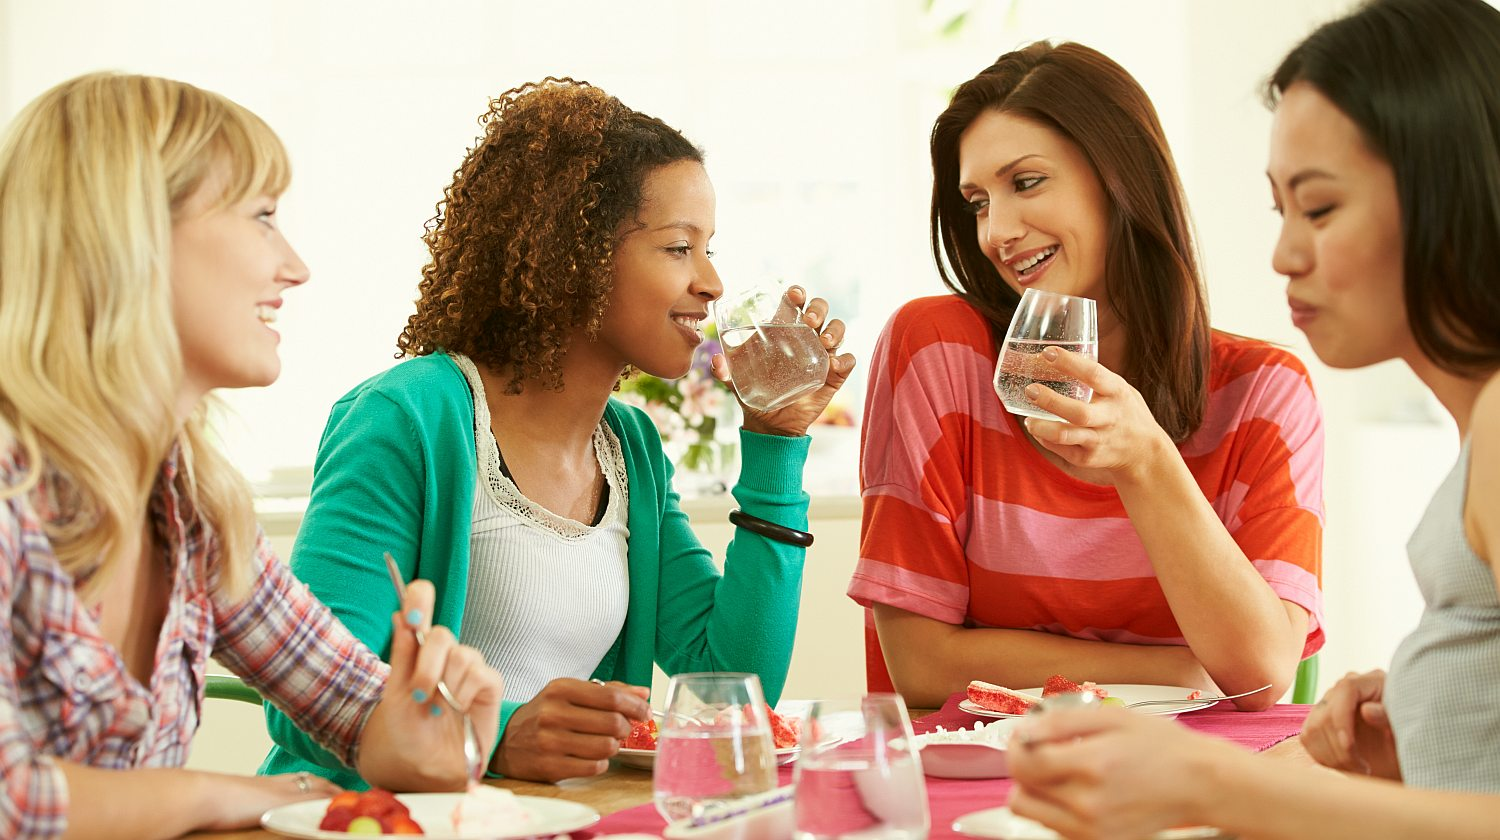 Feature | Eating with friends | Alkaline vs. Acidic: What's The Difference?